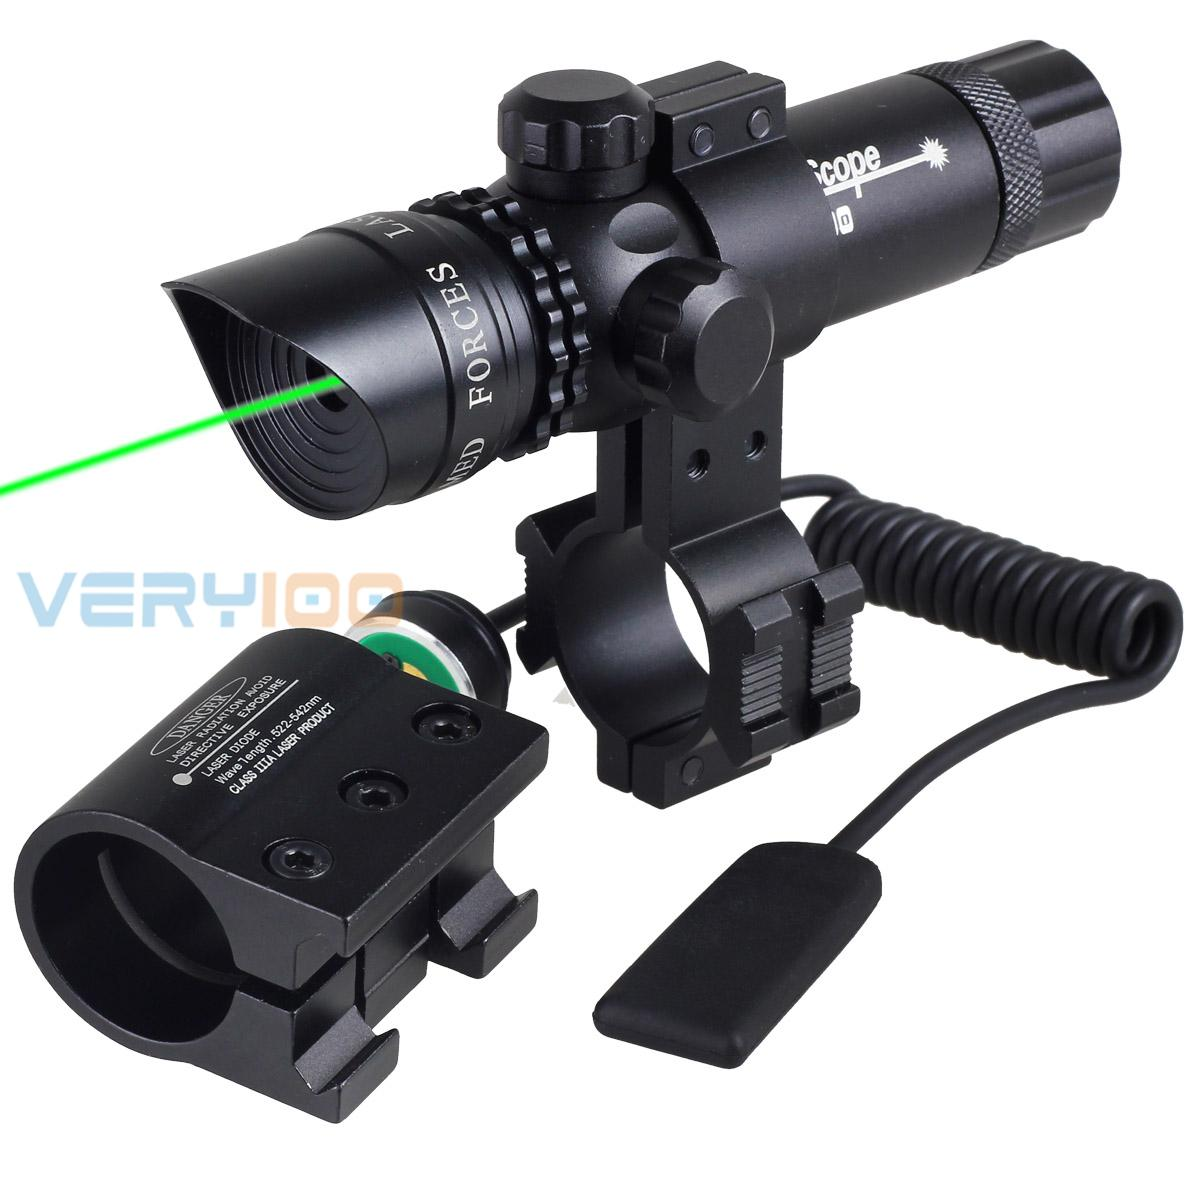 ФОТО Tactical 532nm Green Dot Adjustable Laser Sight Scope w/2 Mounts Switch for Hunting Riflescope Airsoft Guns